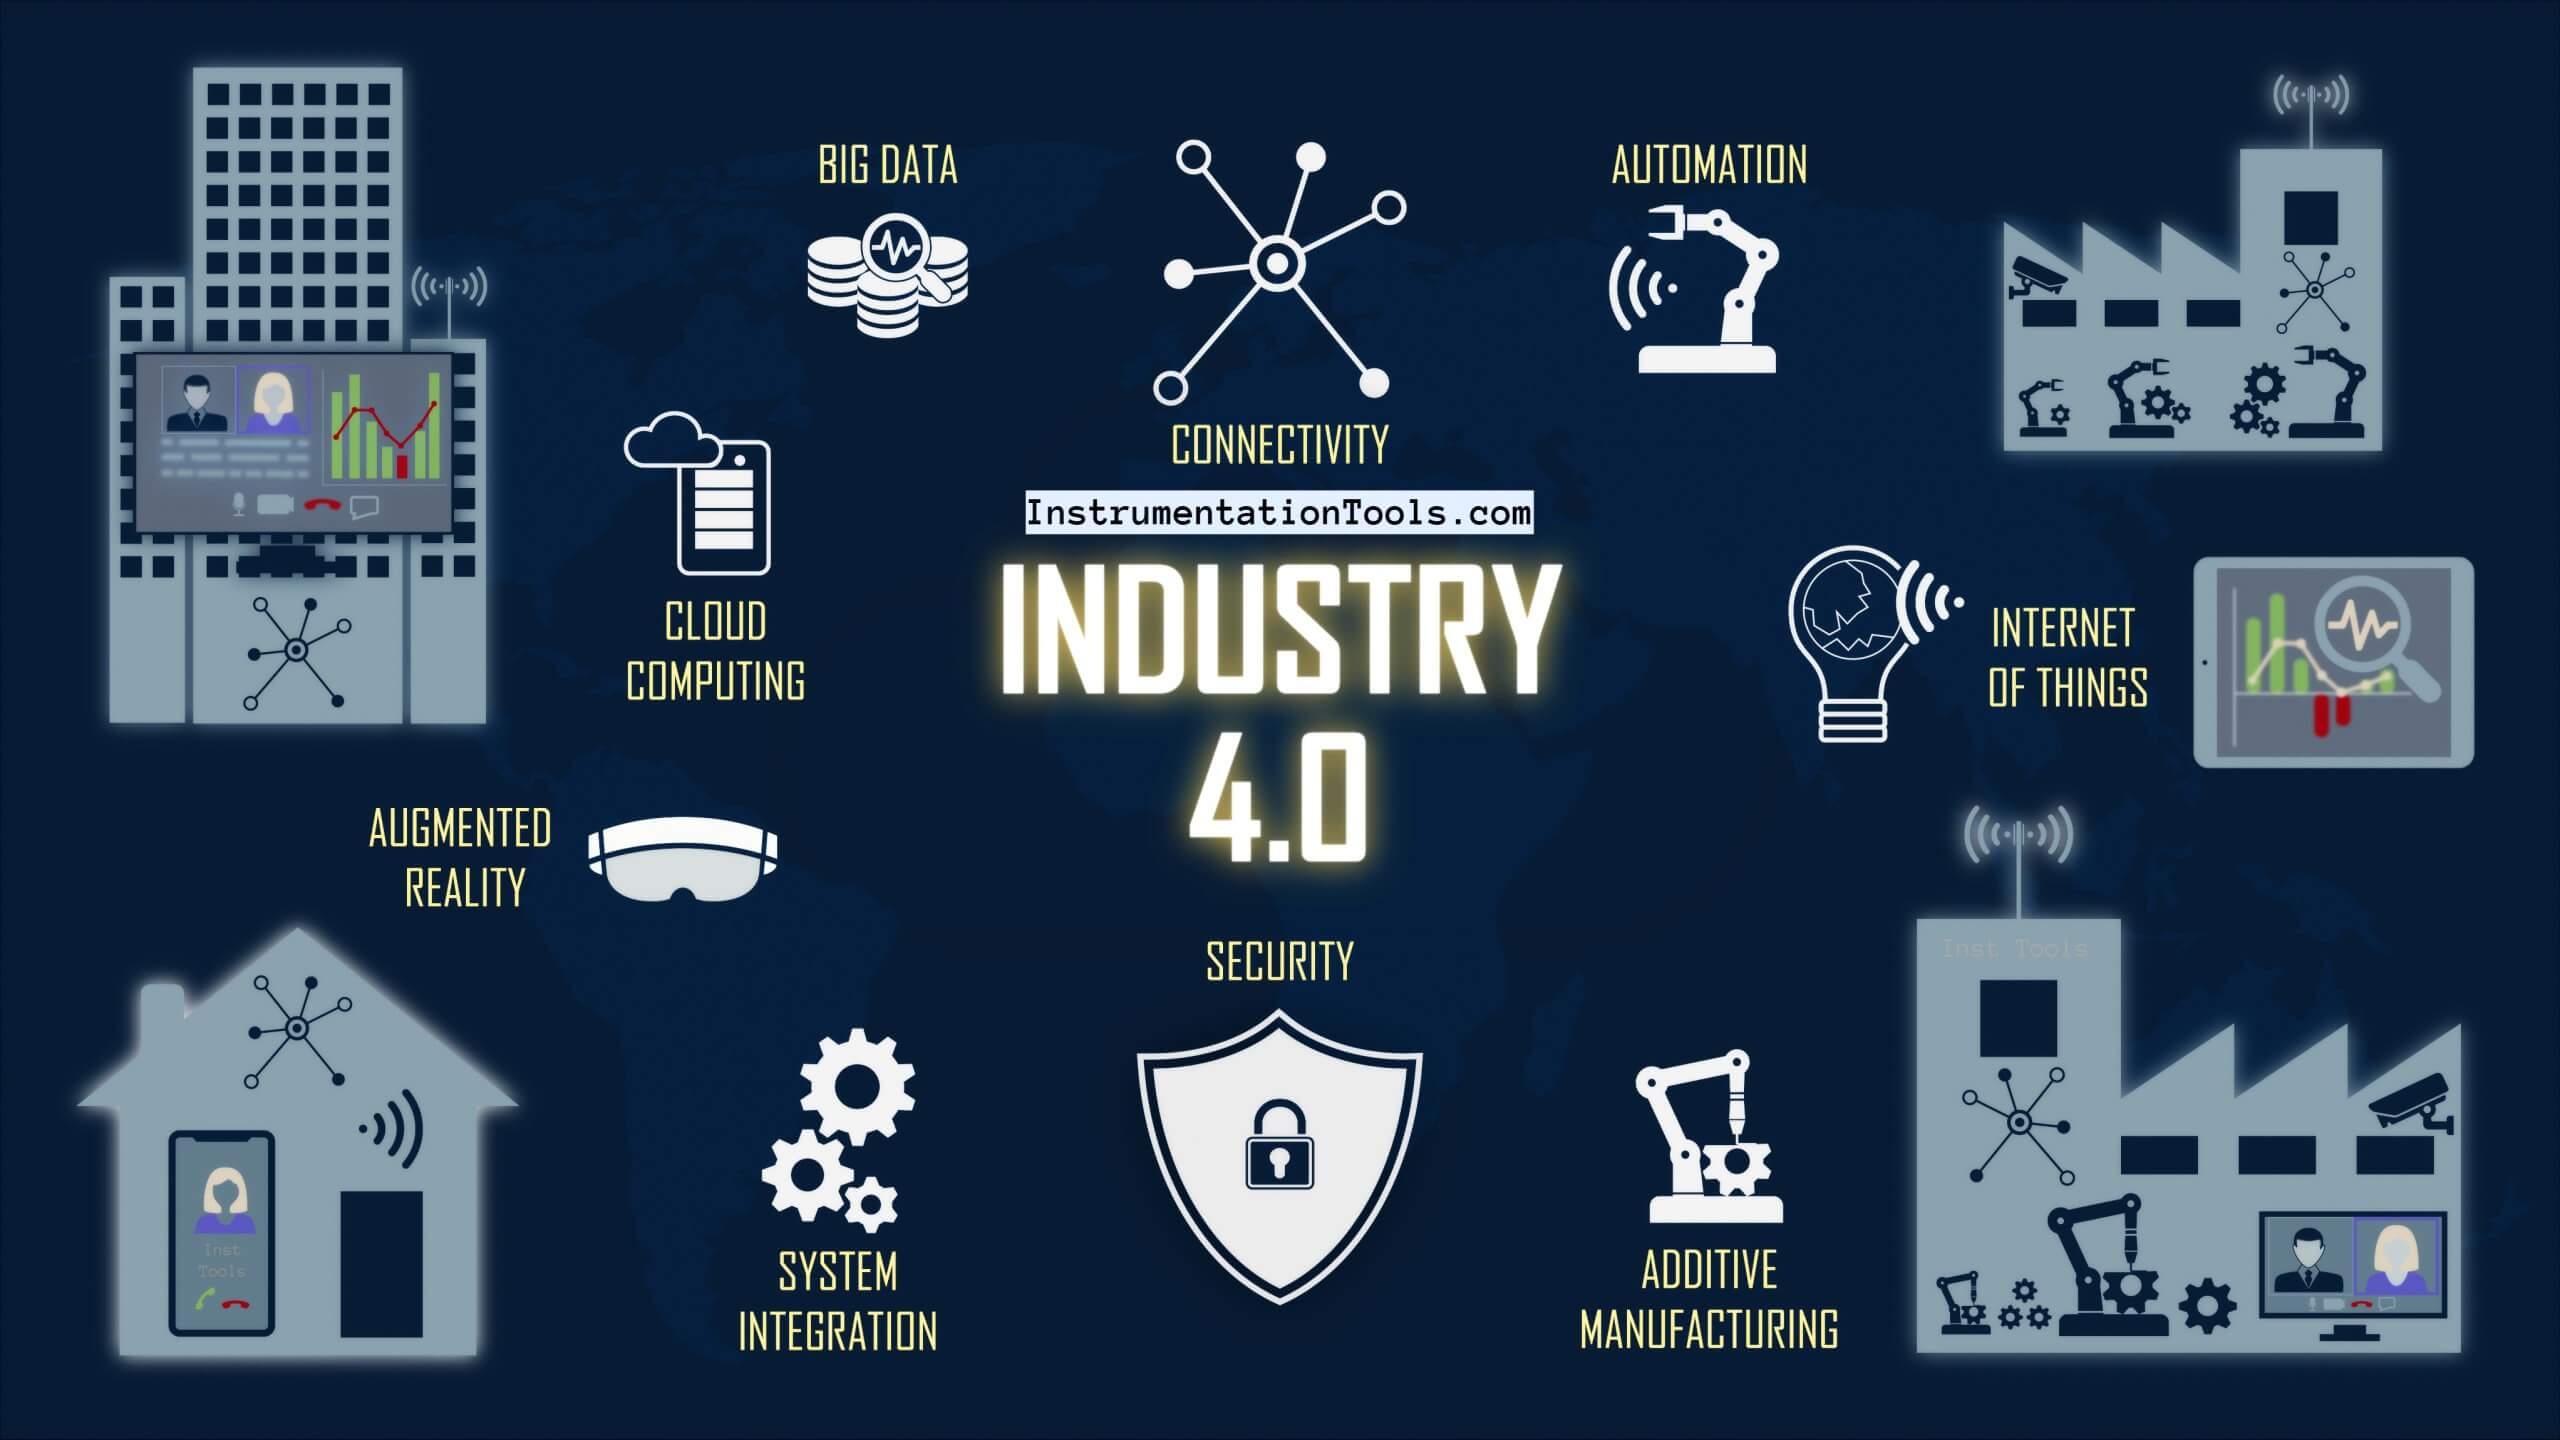 Industry 4.0 Explained